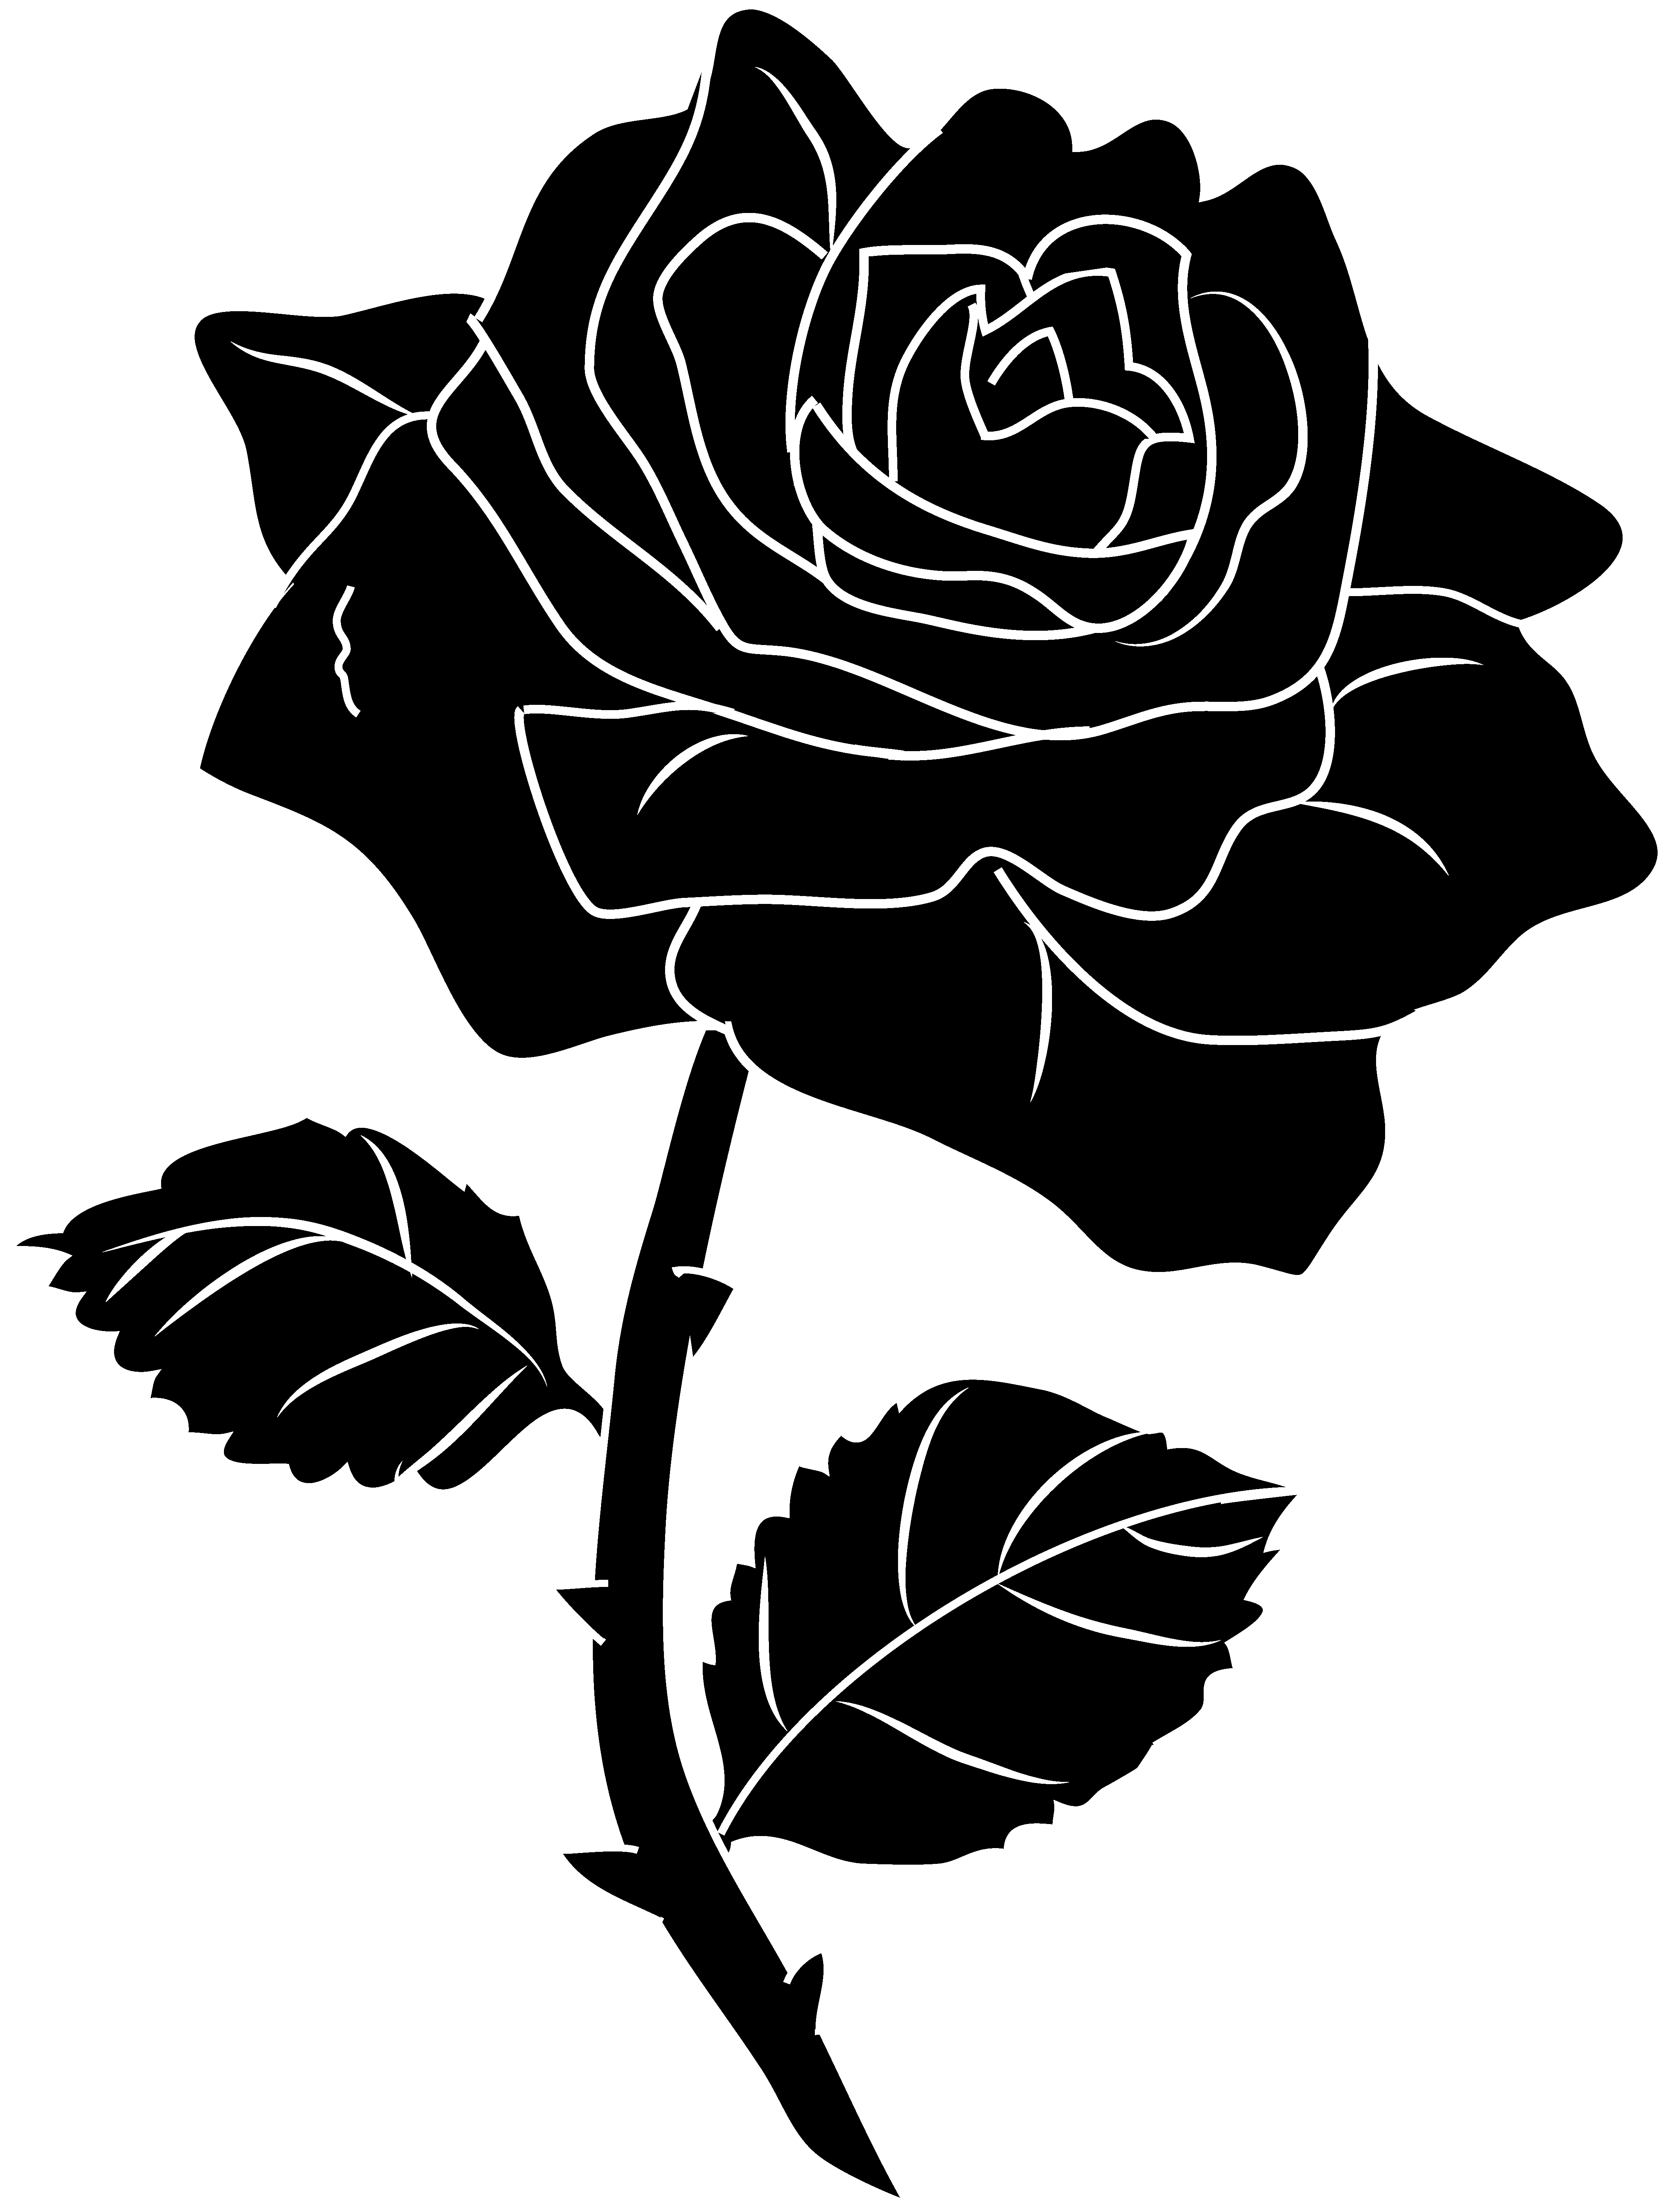 picture royalty free download Rose Flowers Clip Art Black And White